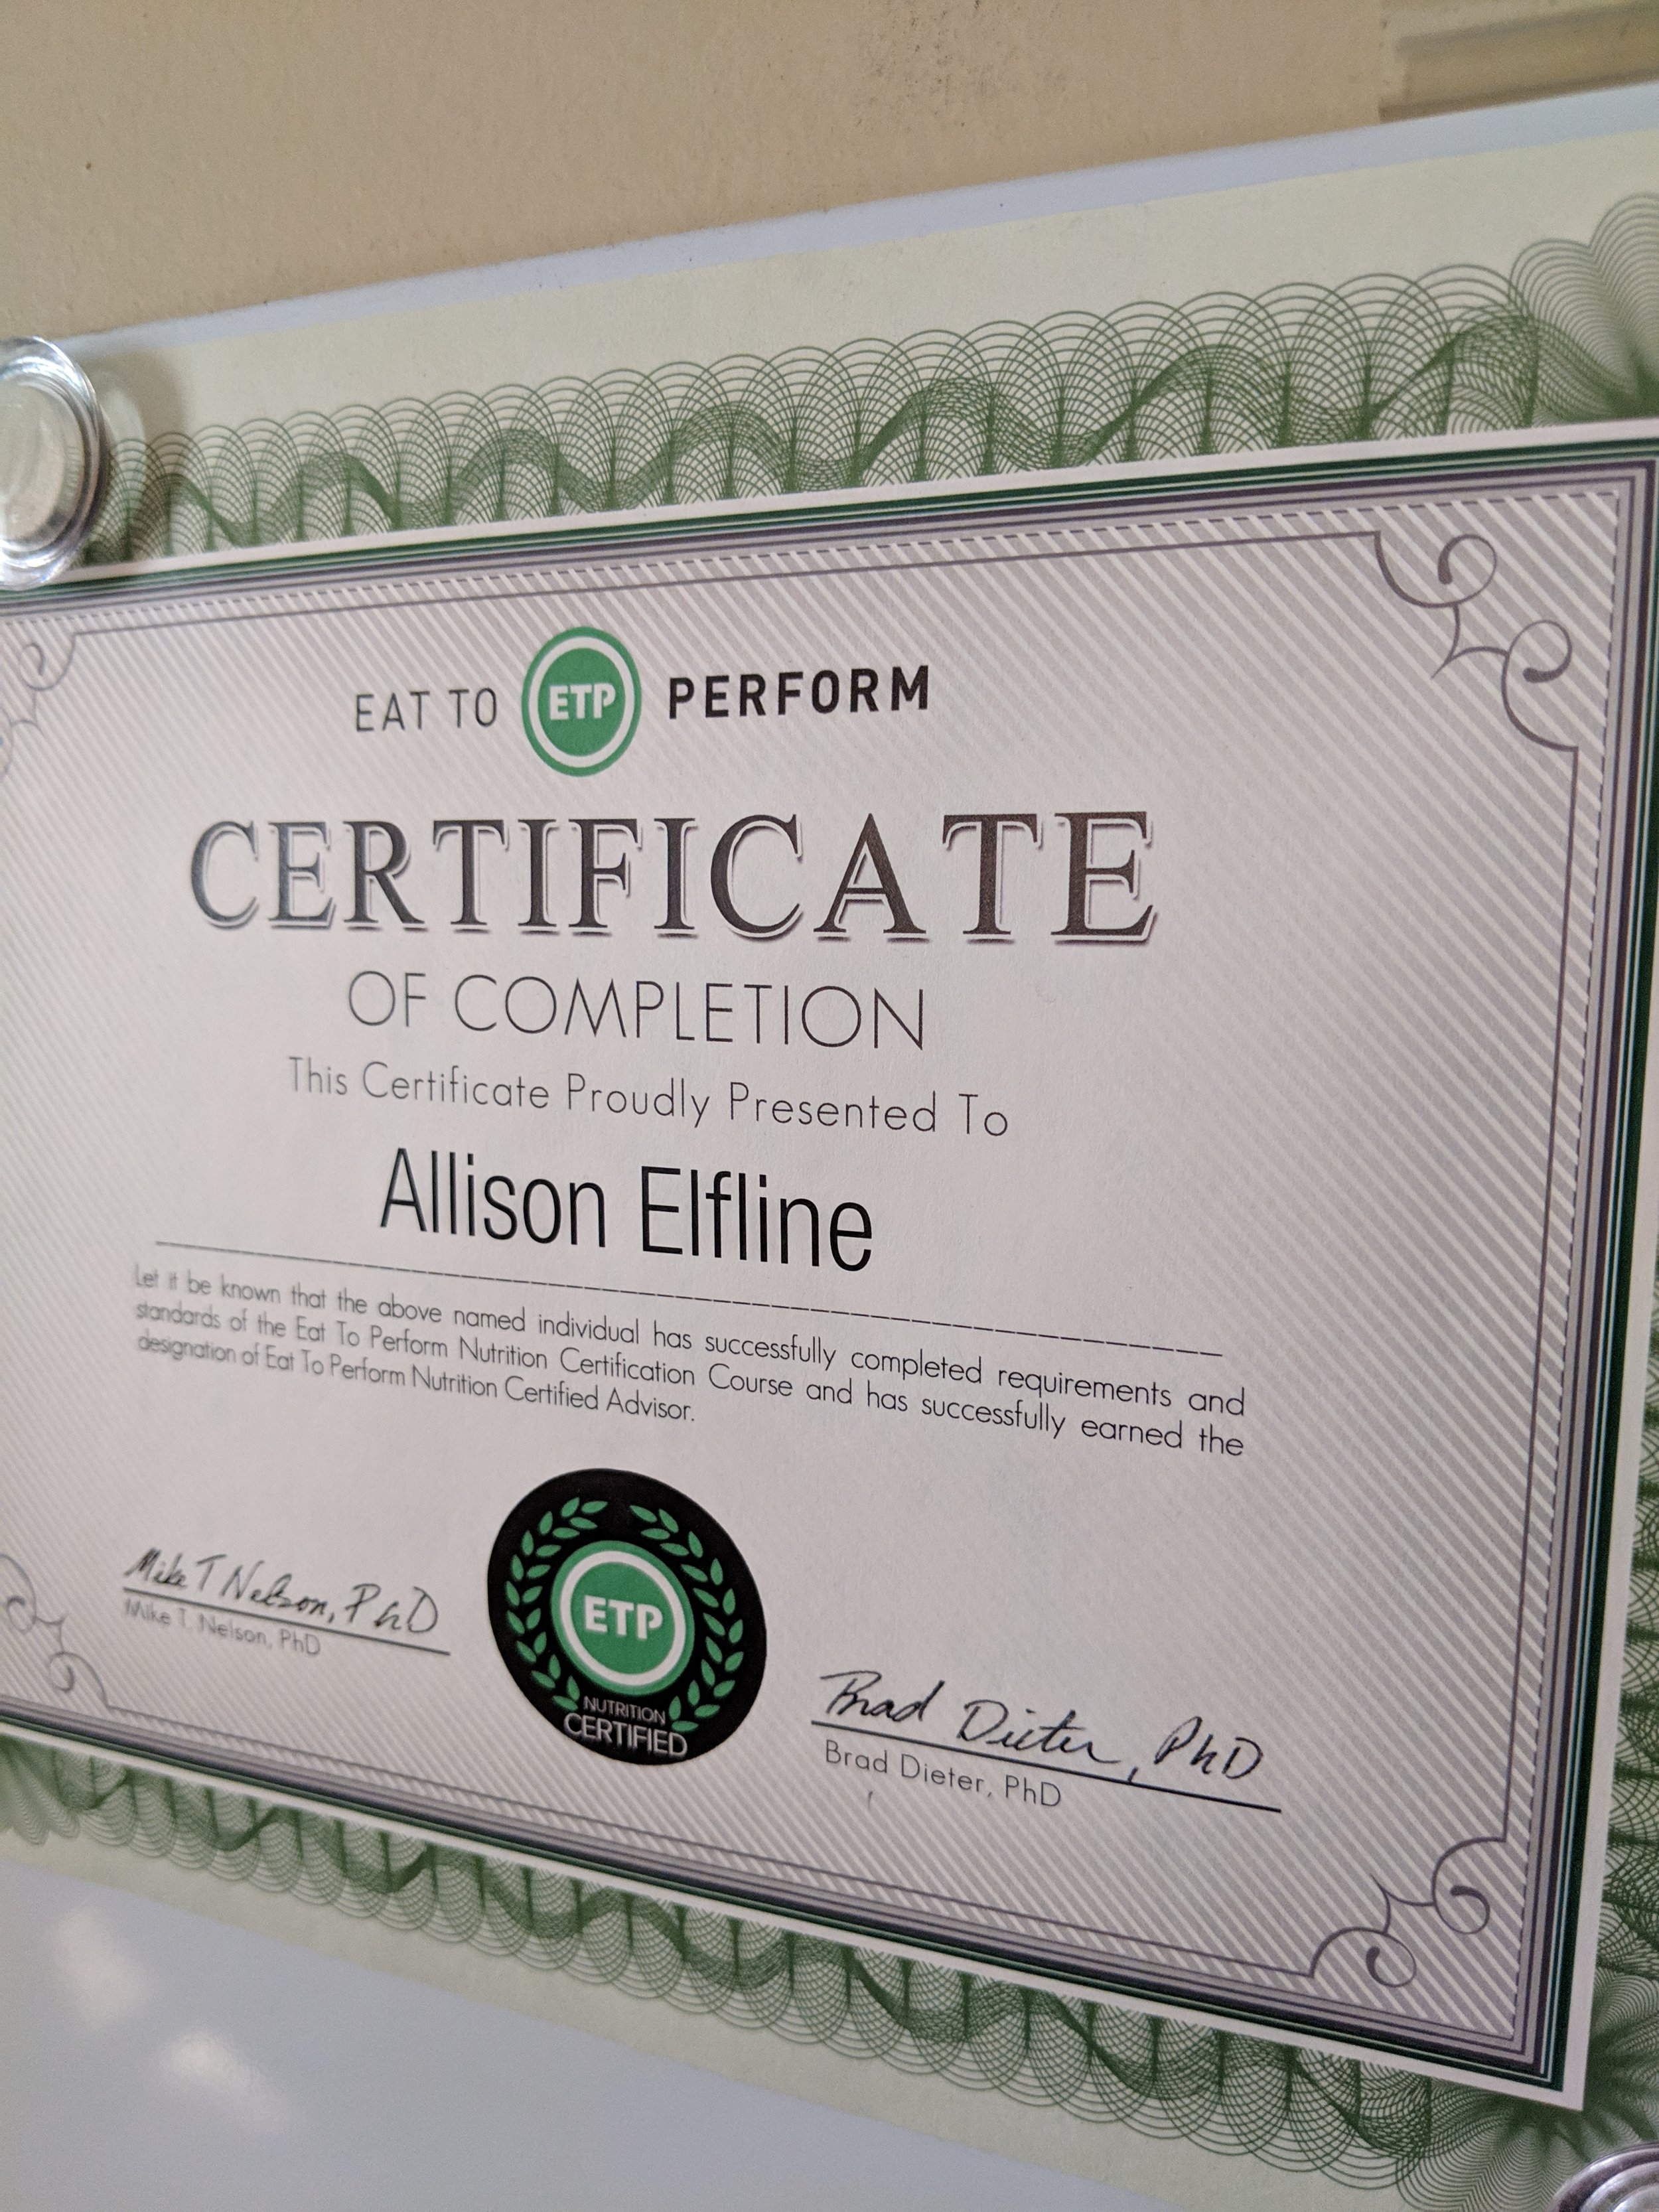 Ally is also proudly certified as a Nutrition Advisor through Eat To Perform, LLC.